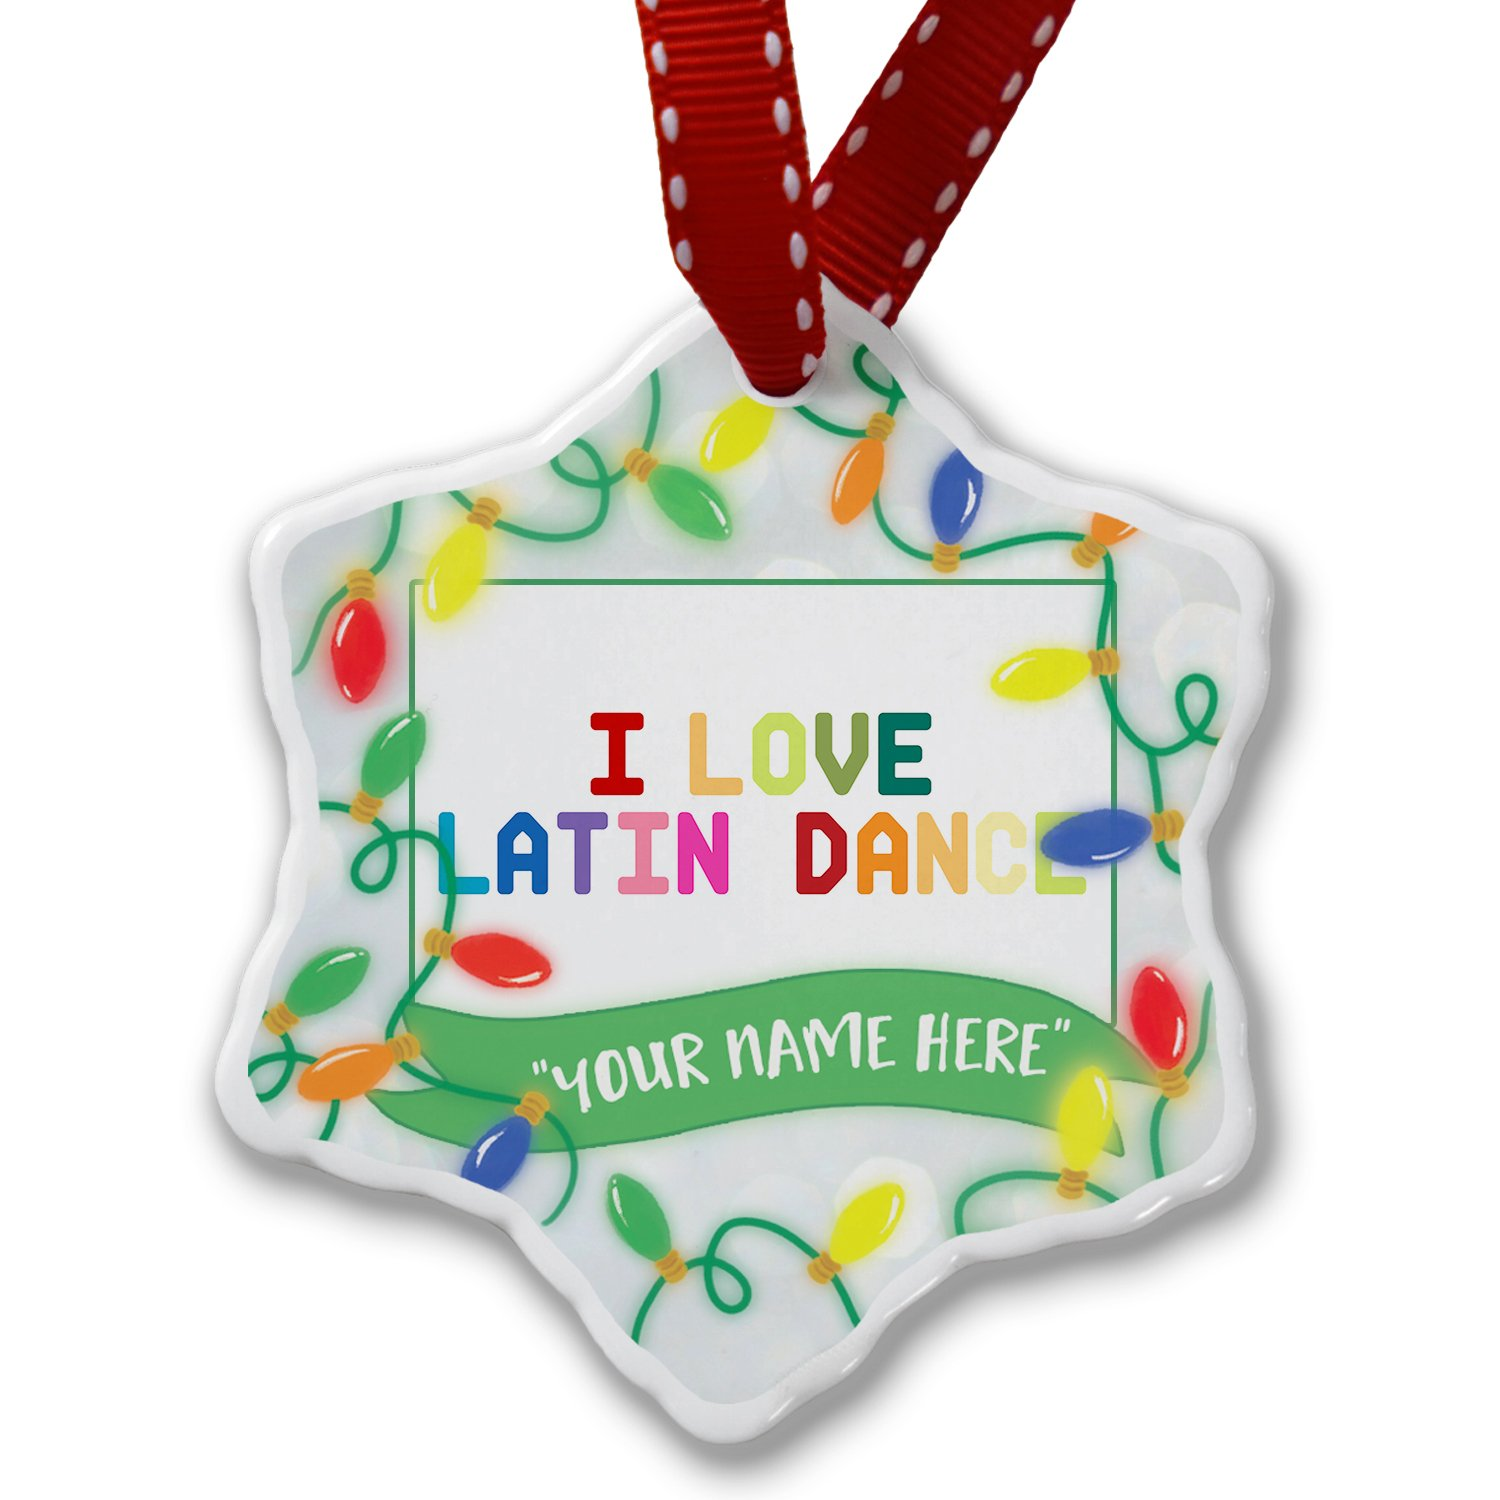 Personalized Name Christmas Ornament, I Love Latin Dance,Colorful NEONBLOND